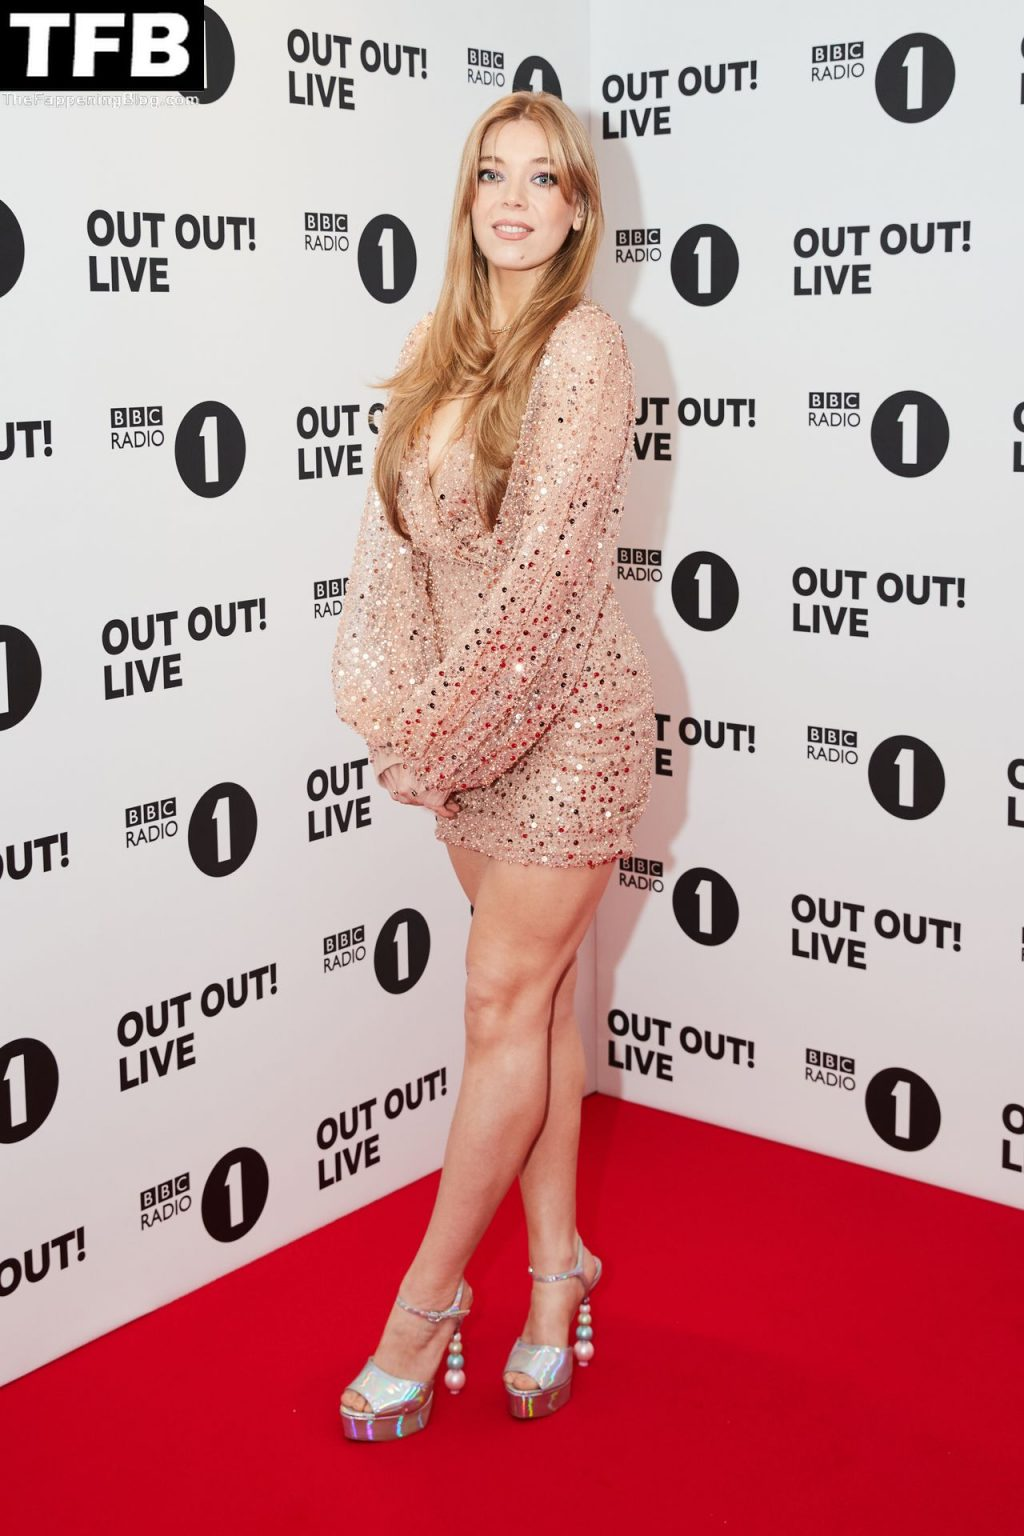 Becky Hill Looks Sexy at the BBC Radio 1 Out Out! Live Concert (10 Photos)